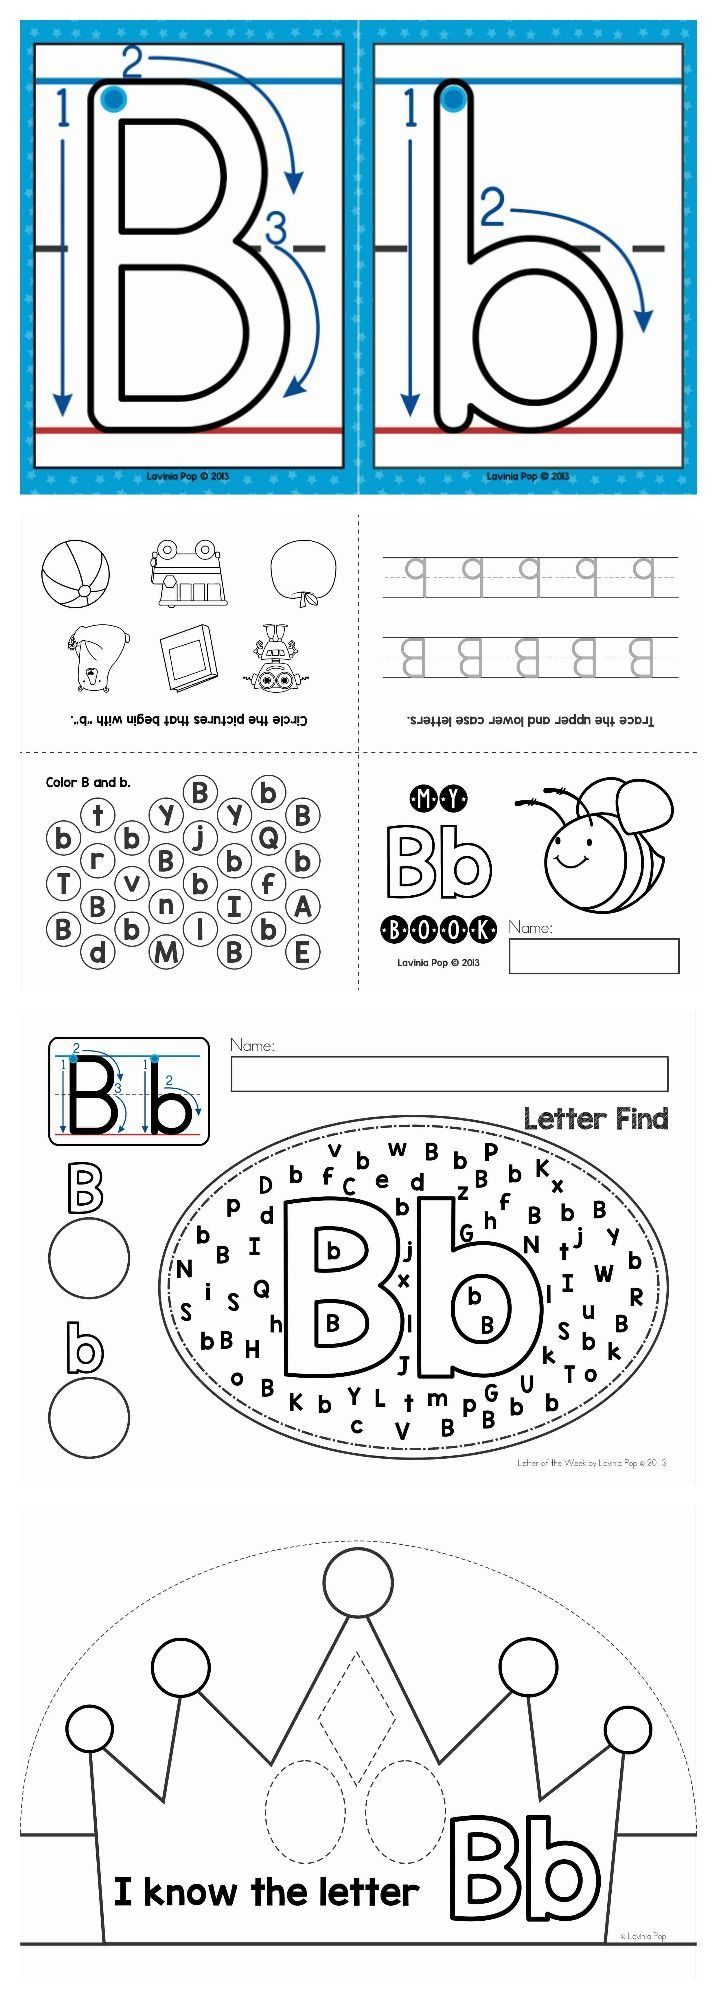 FREE Letter of the Week resource jam-packed with worksheets and activities.